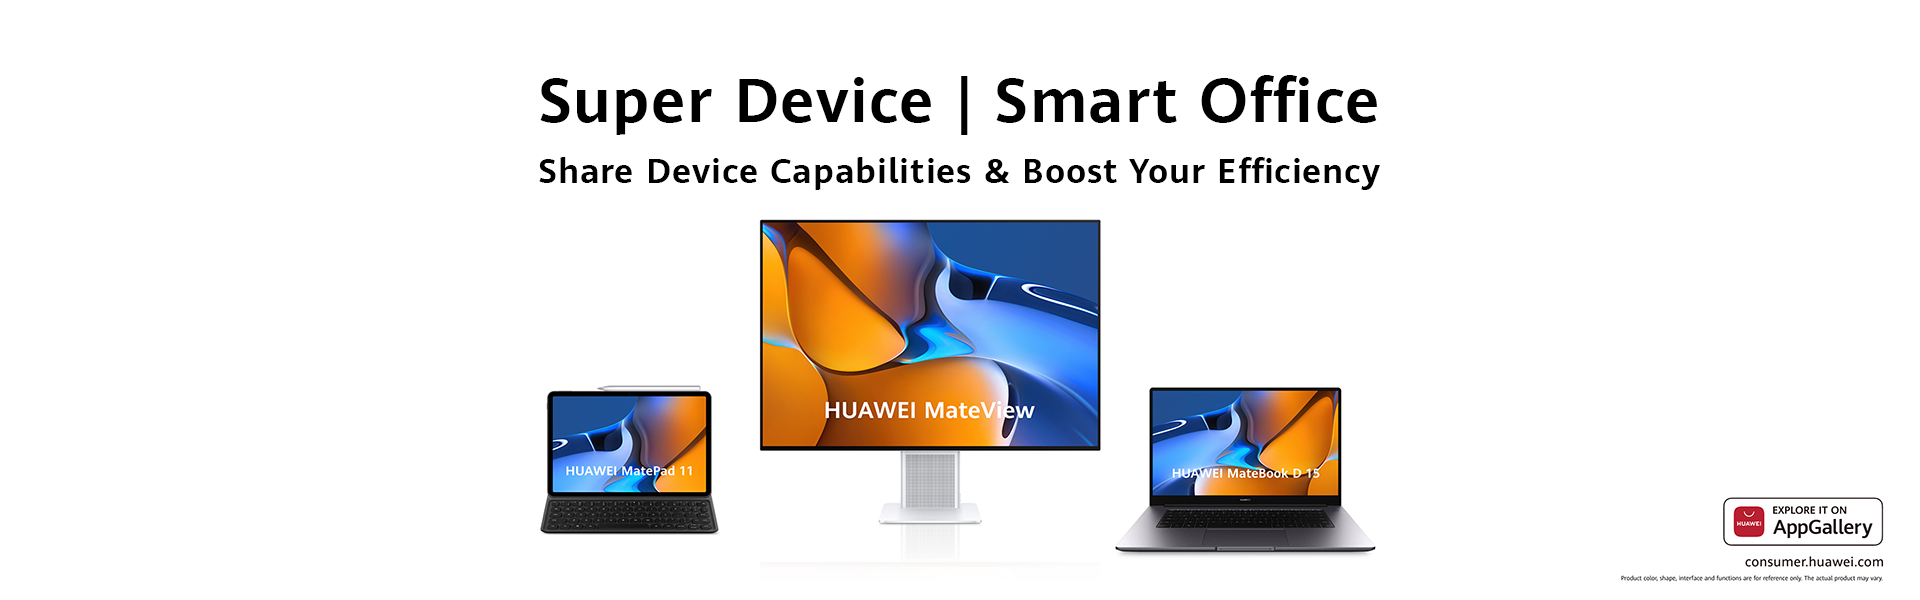 HUAWEI Super Devices